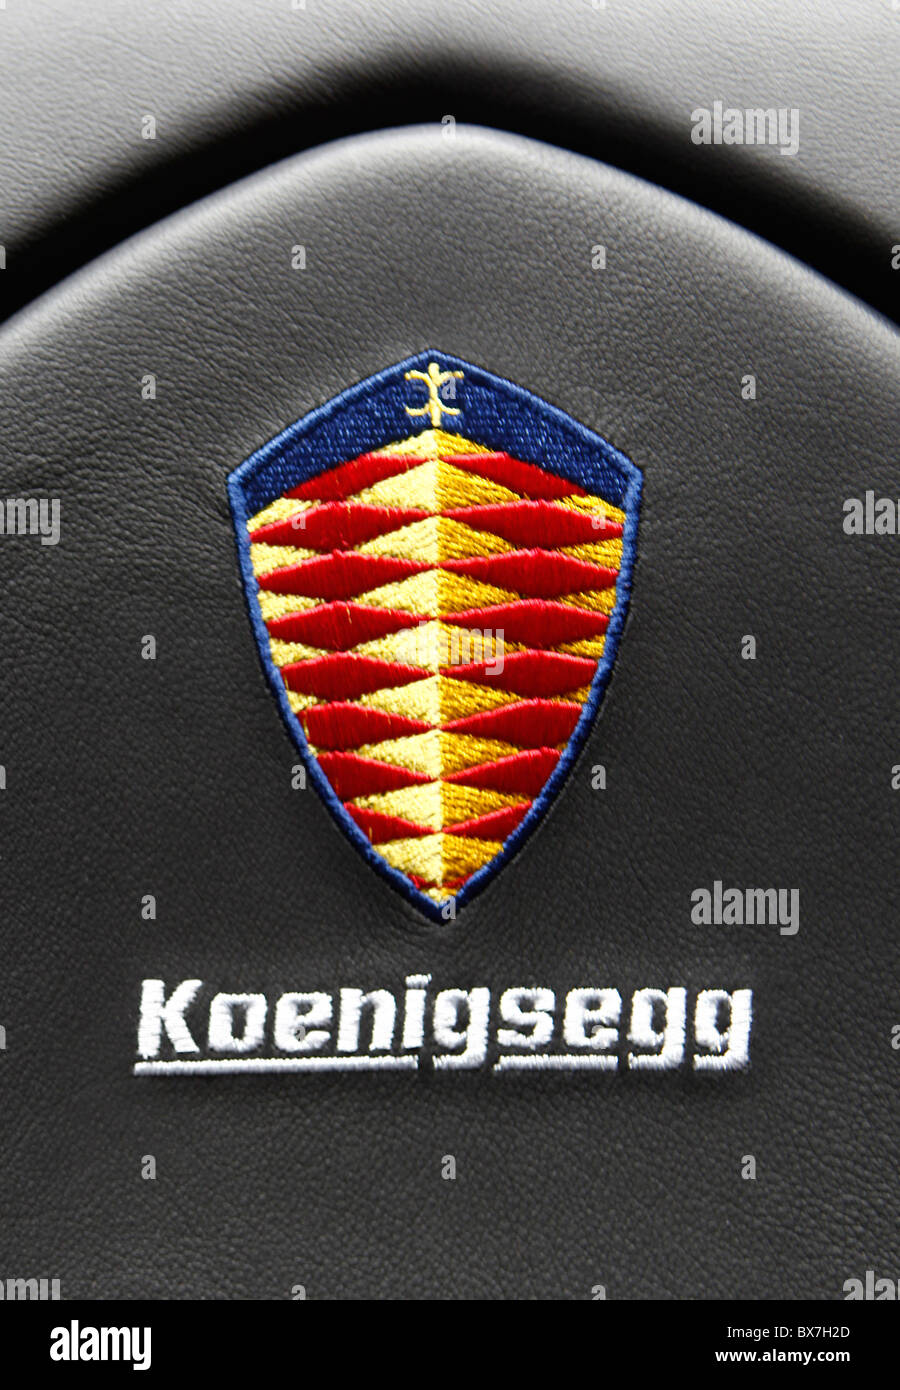 koenigsegg stock photo 33358485 alamy